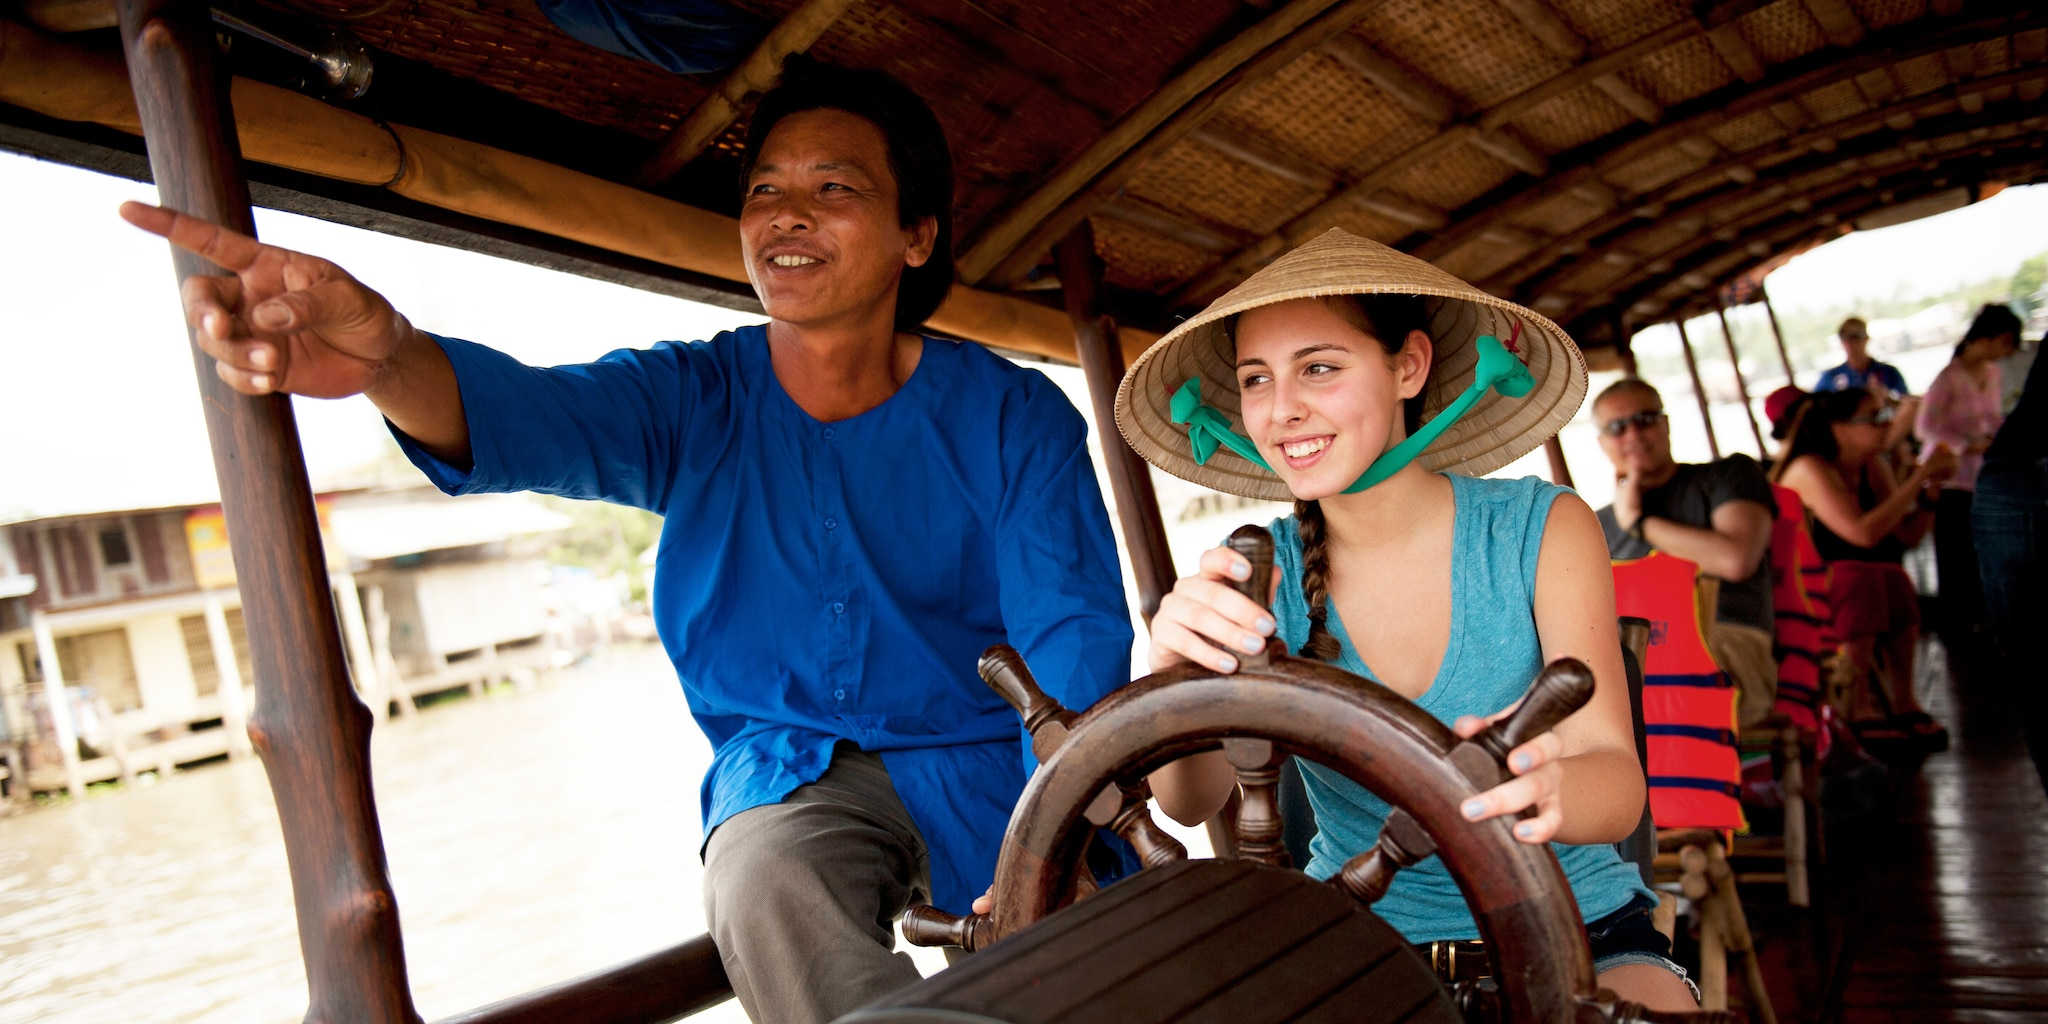 Cruise the Mekong River Delta on the Vietnam vacation